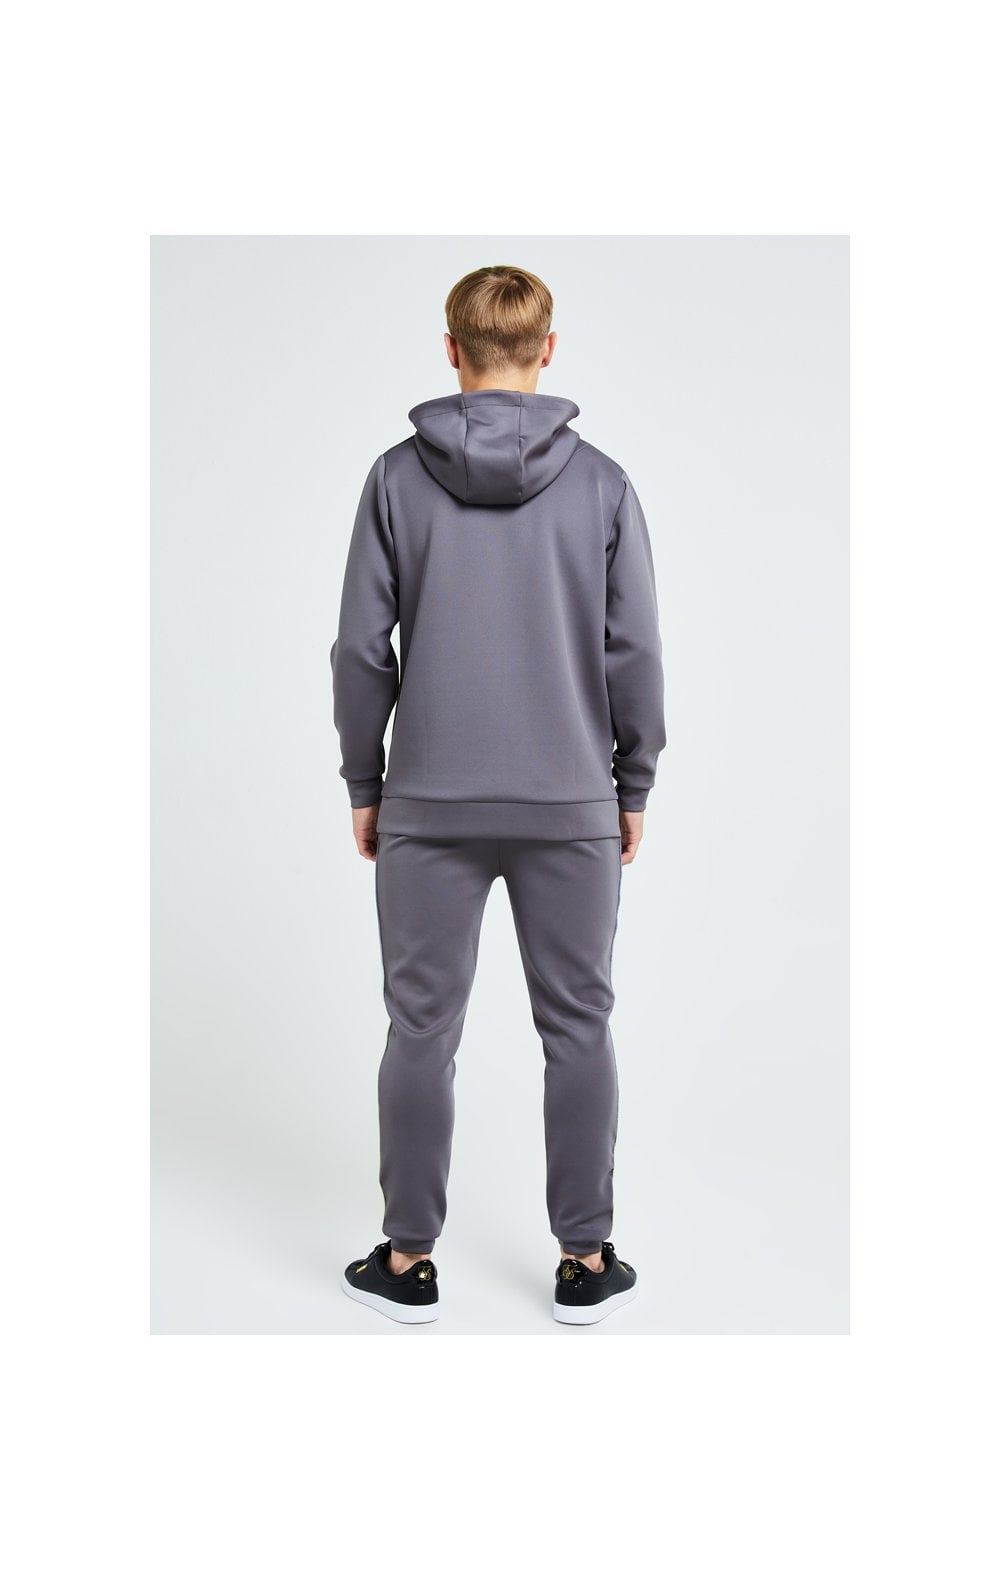 Illusive London Blaze Overhead Hoodie - Dark Grey & Lime (5)